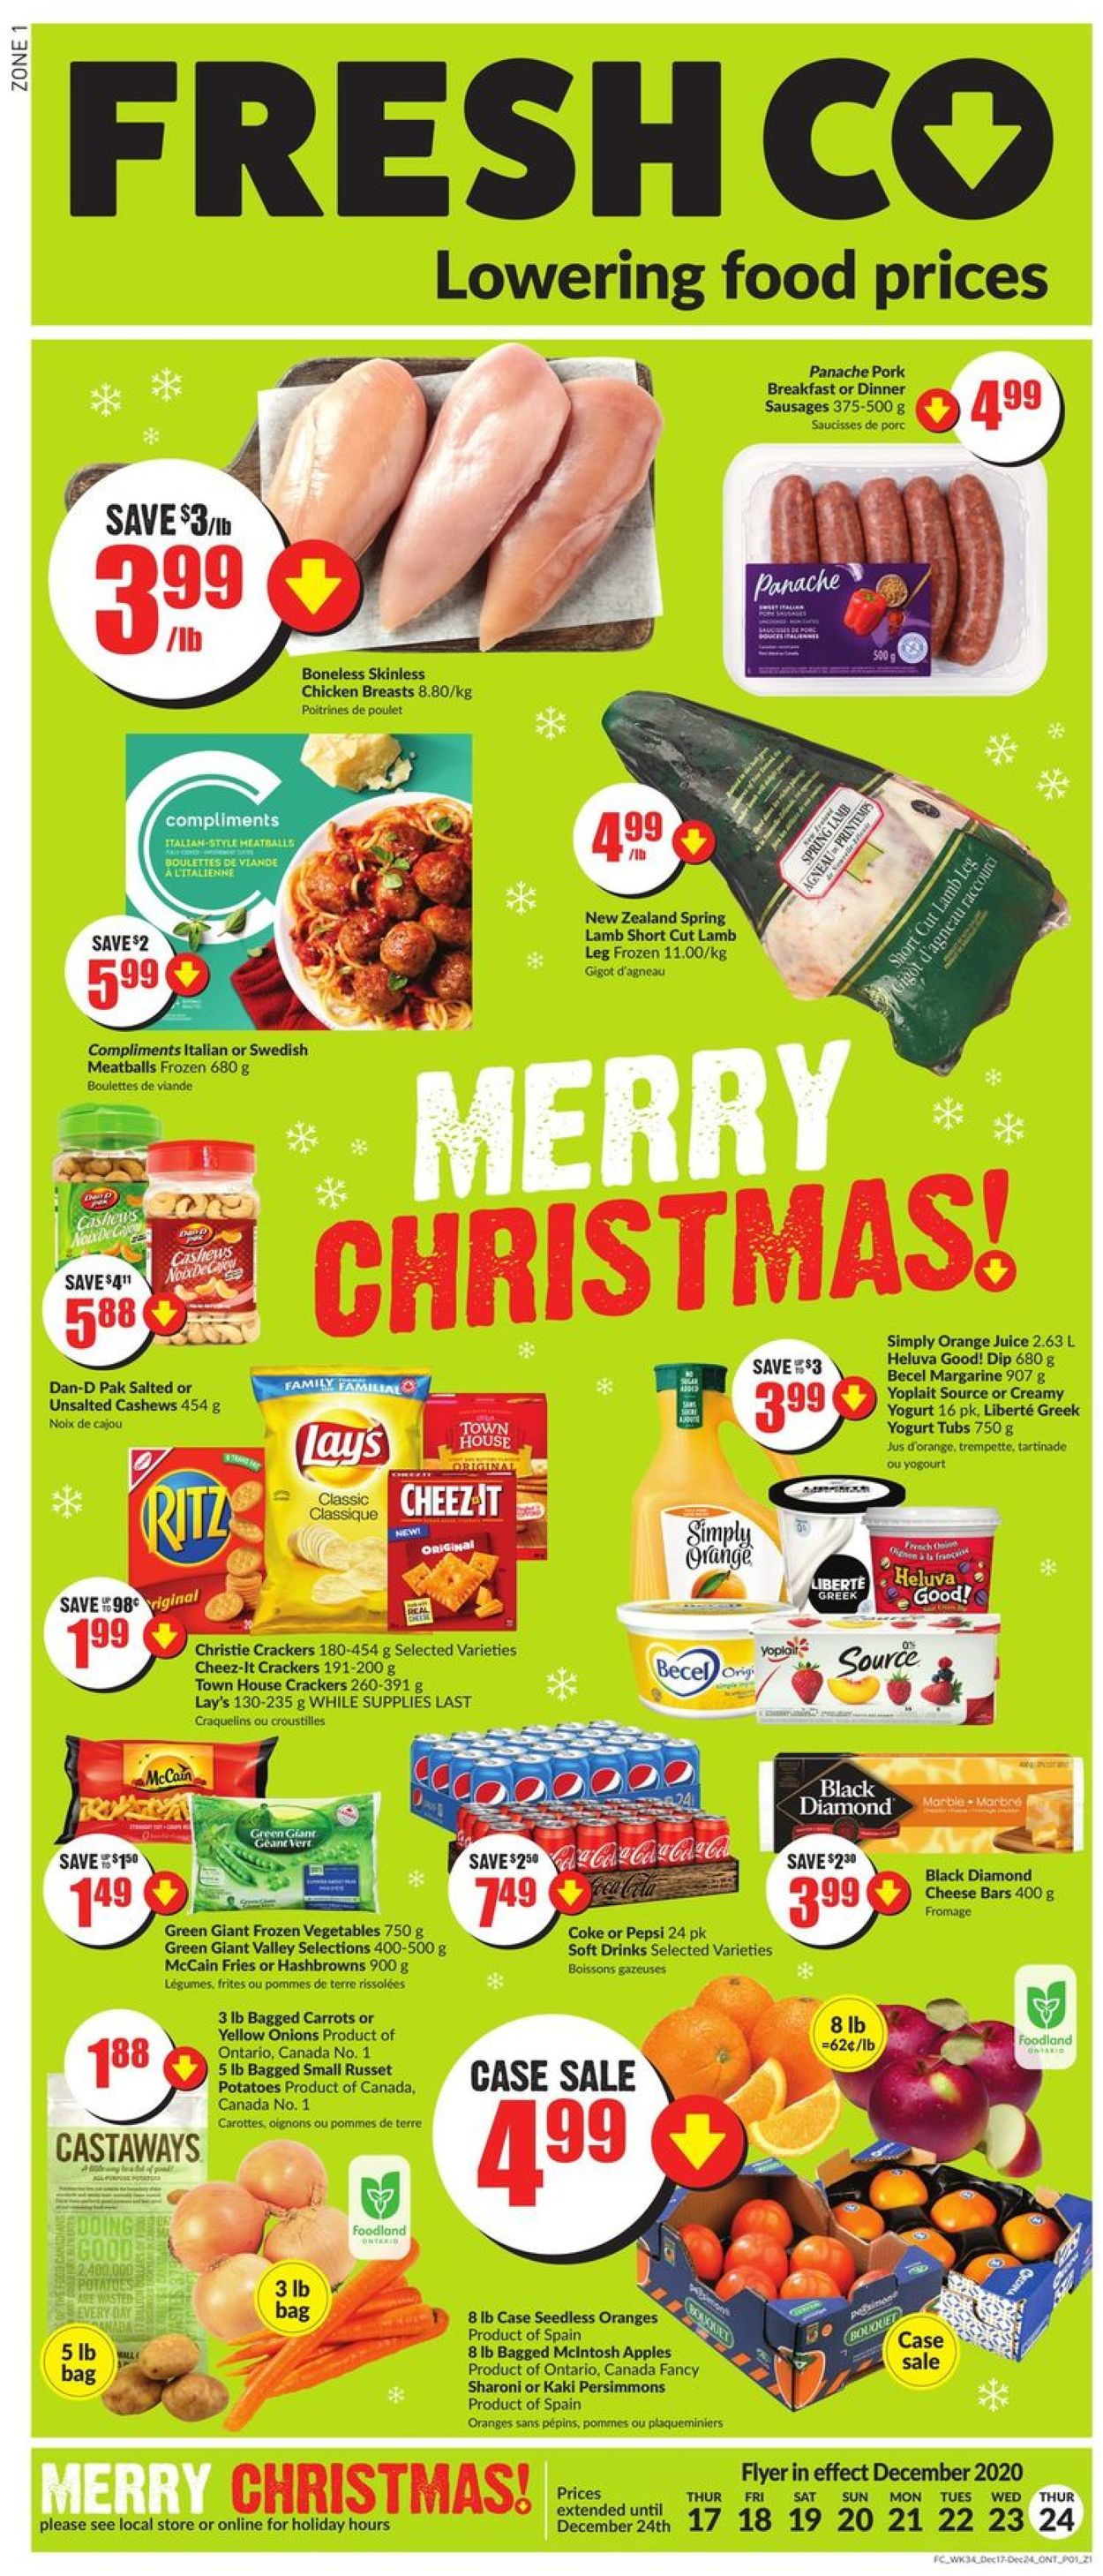 FreshCo. - Holiday 2020 Flyer - 12/17-12/24/2020